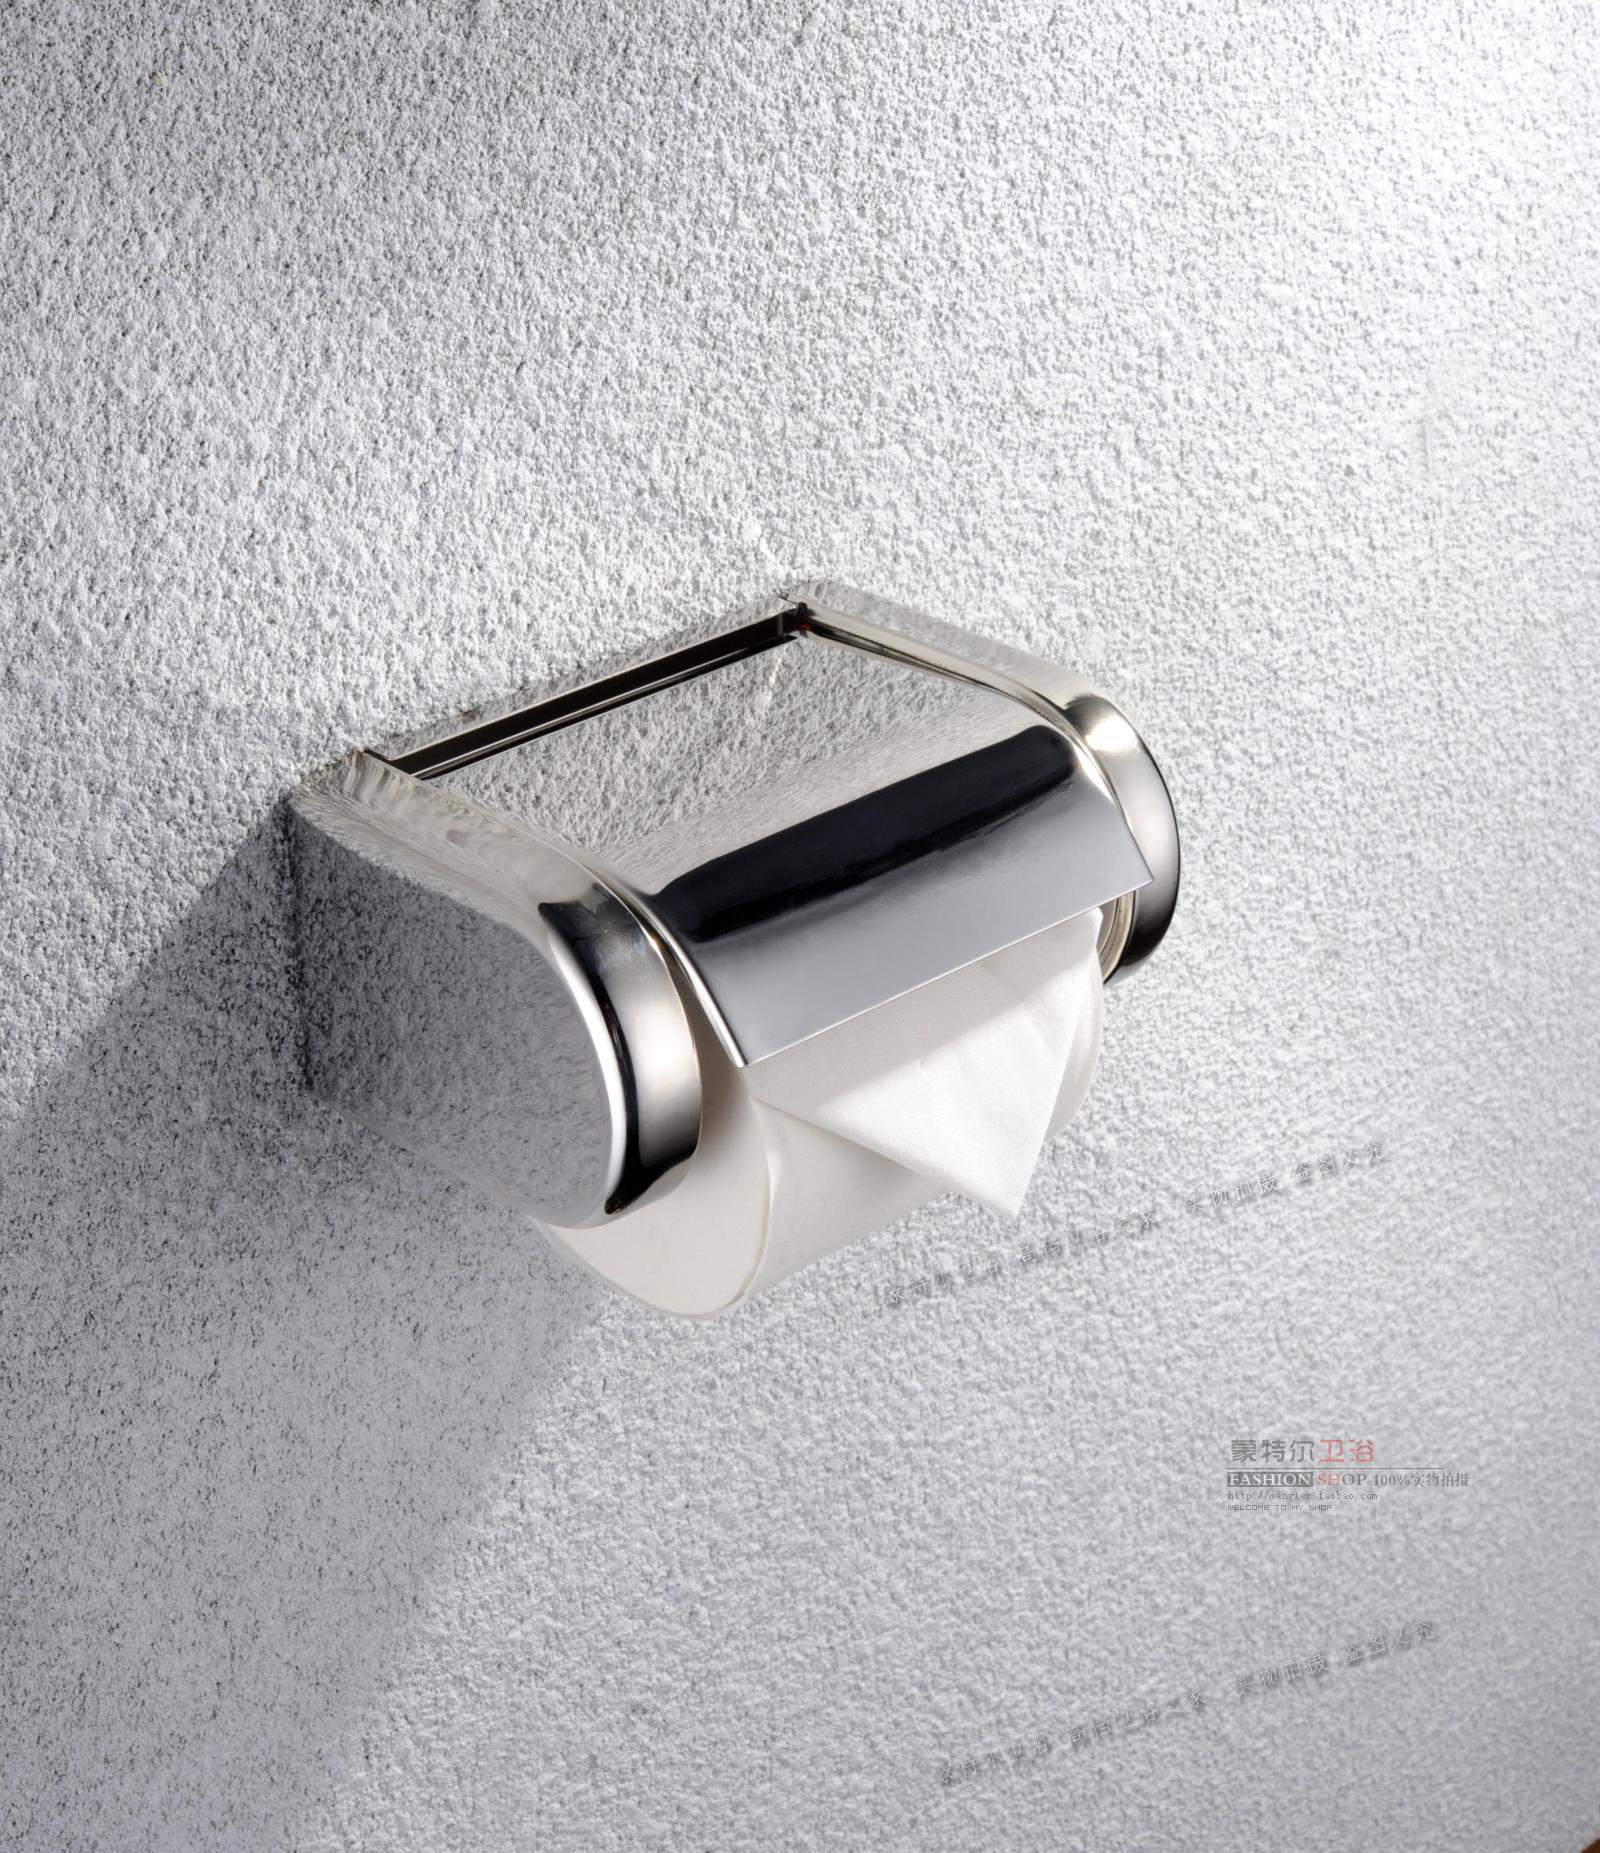 toilet paper holders 304 stainless steel bath accessories bathroom towel rack toilet tissue box carton box hand toilet paper holder toilet paper holders - Bathroom Accessories Toilet Paper Holders